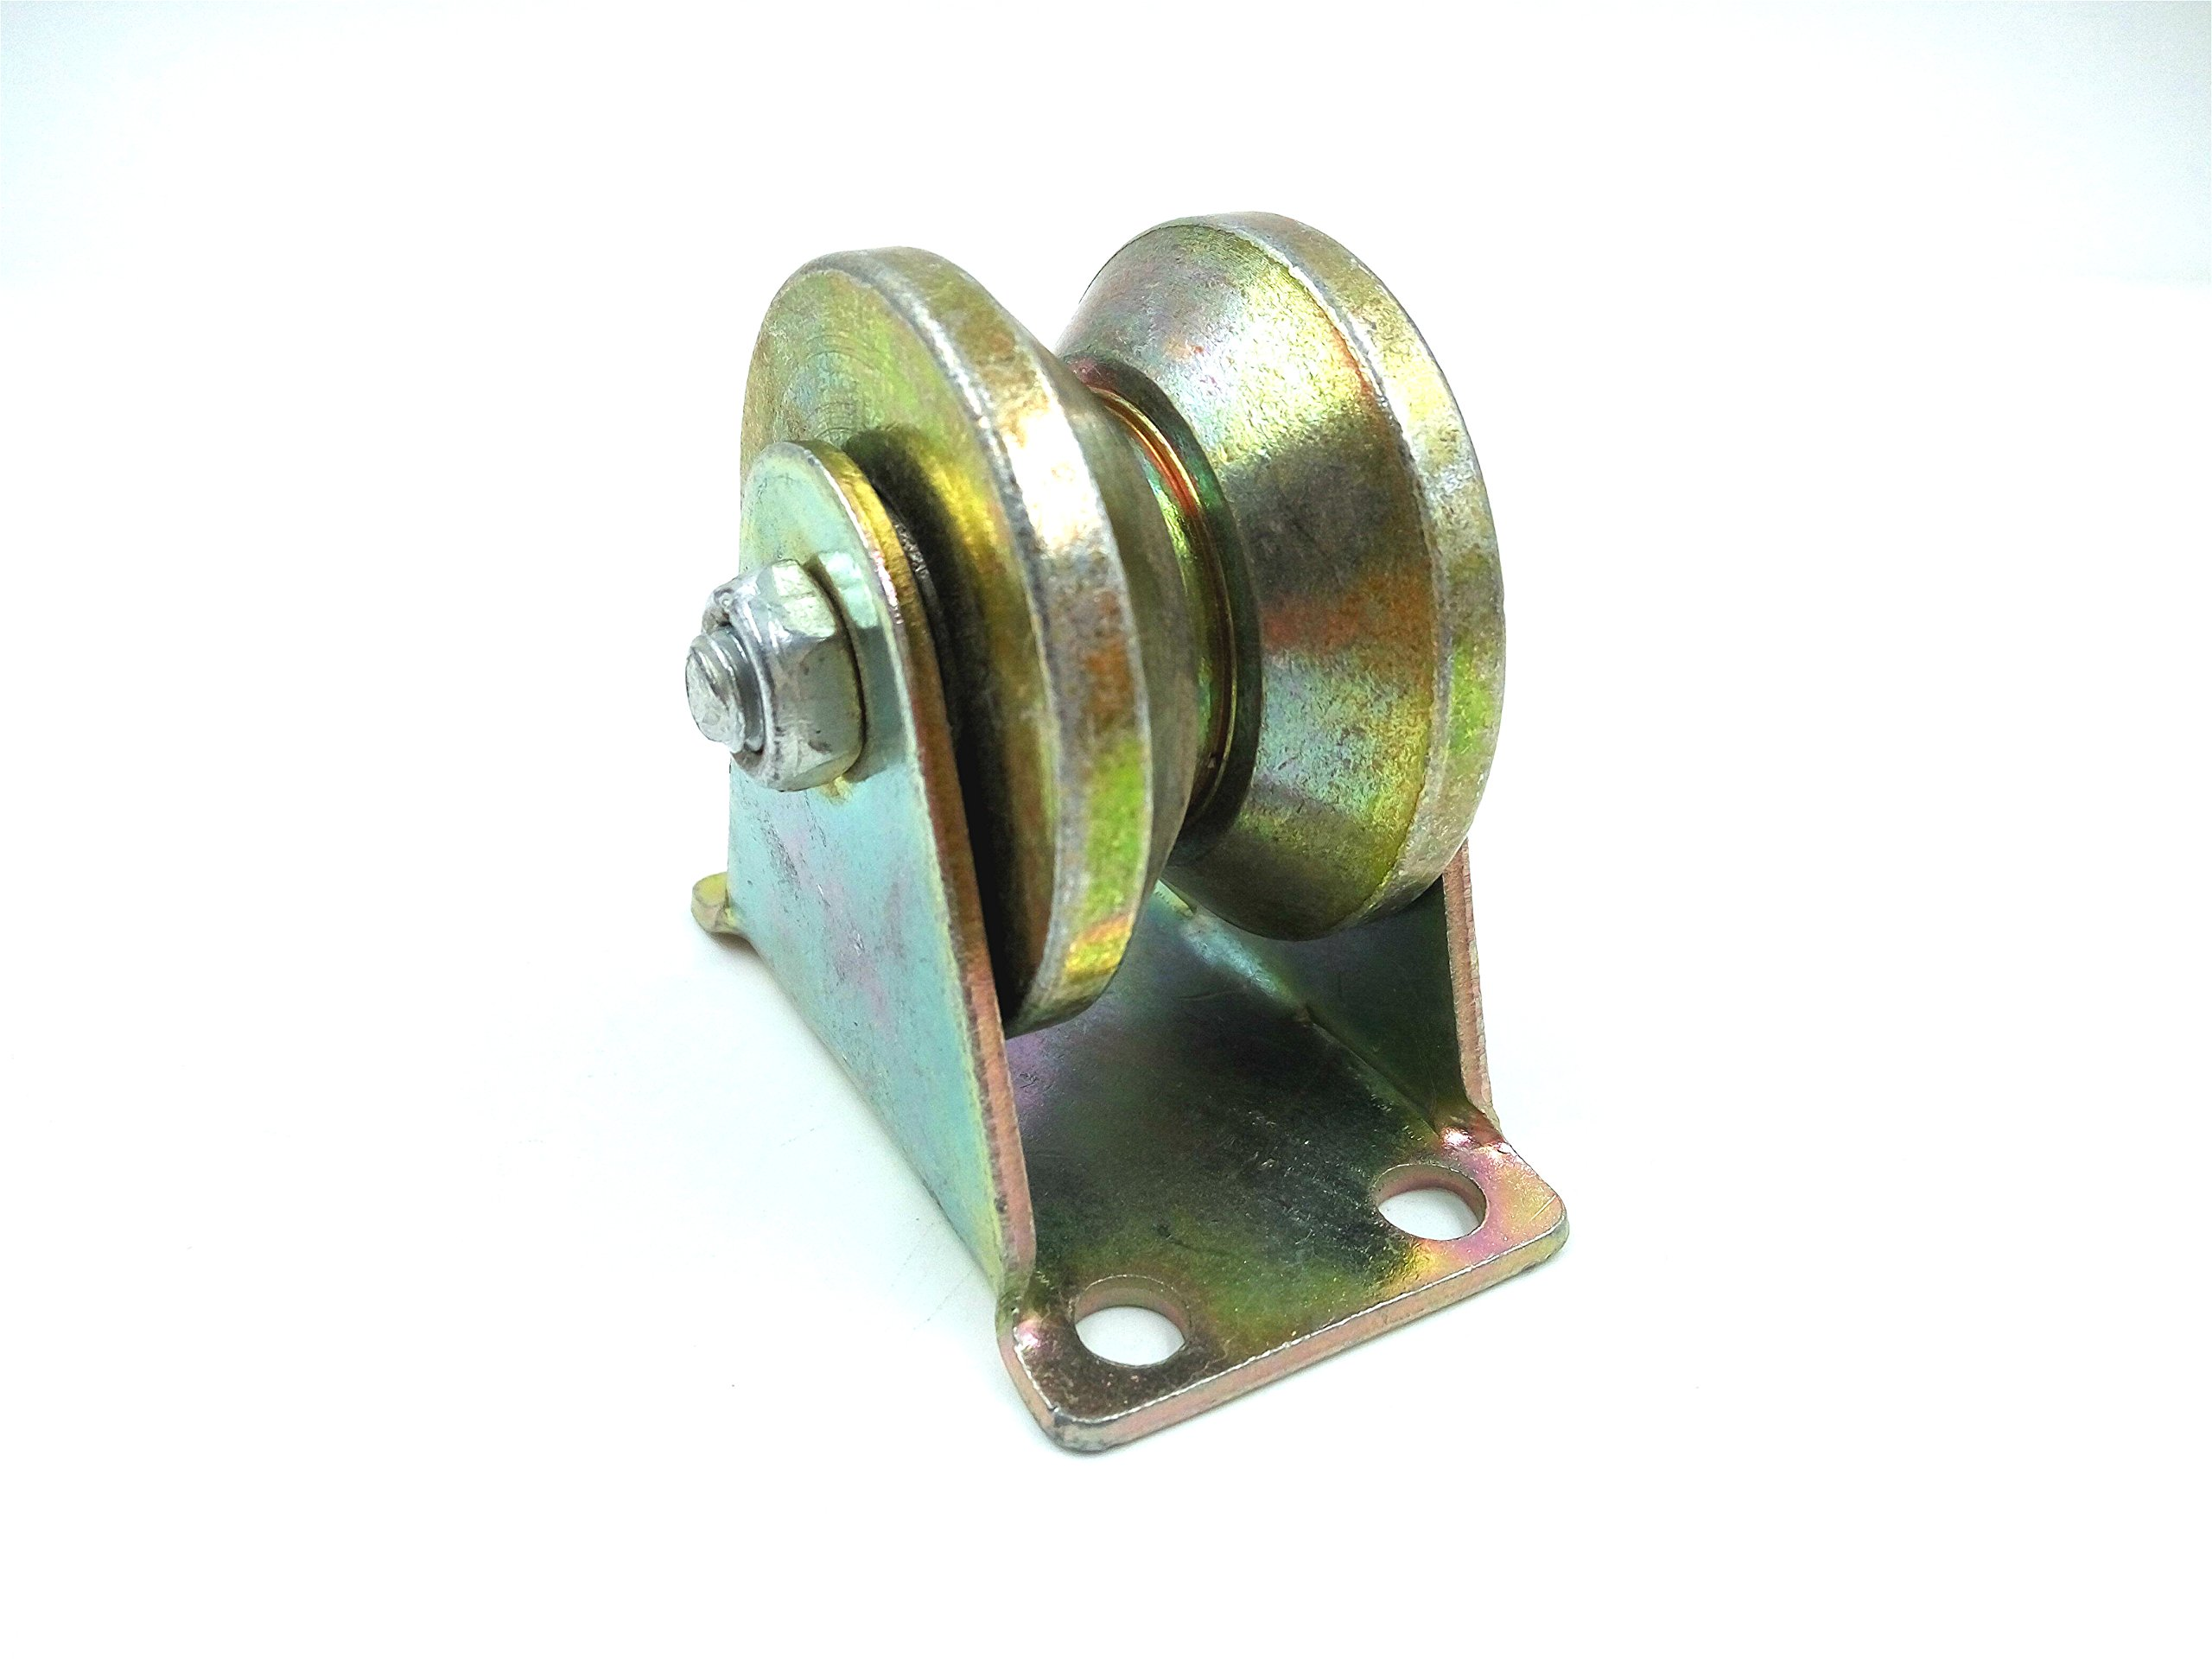 Wang-Data 59mm Dia Yellow 45# Steel V Groove Rigid Caster Wheel for Industrial machines Carts 300KG